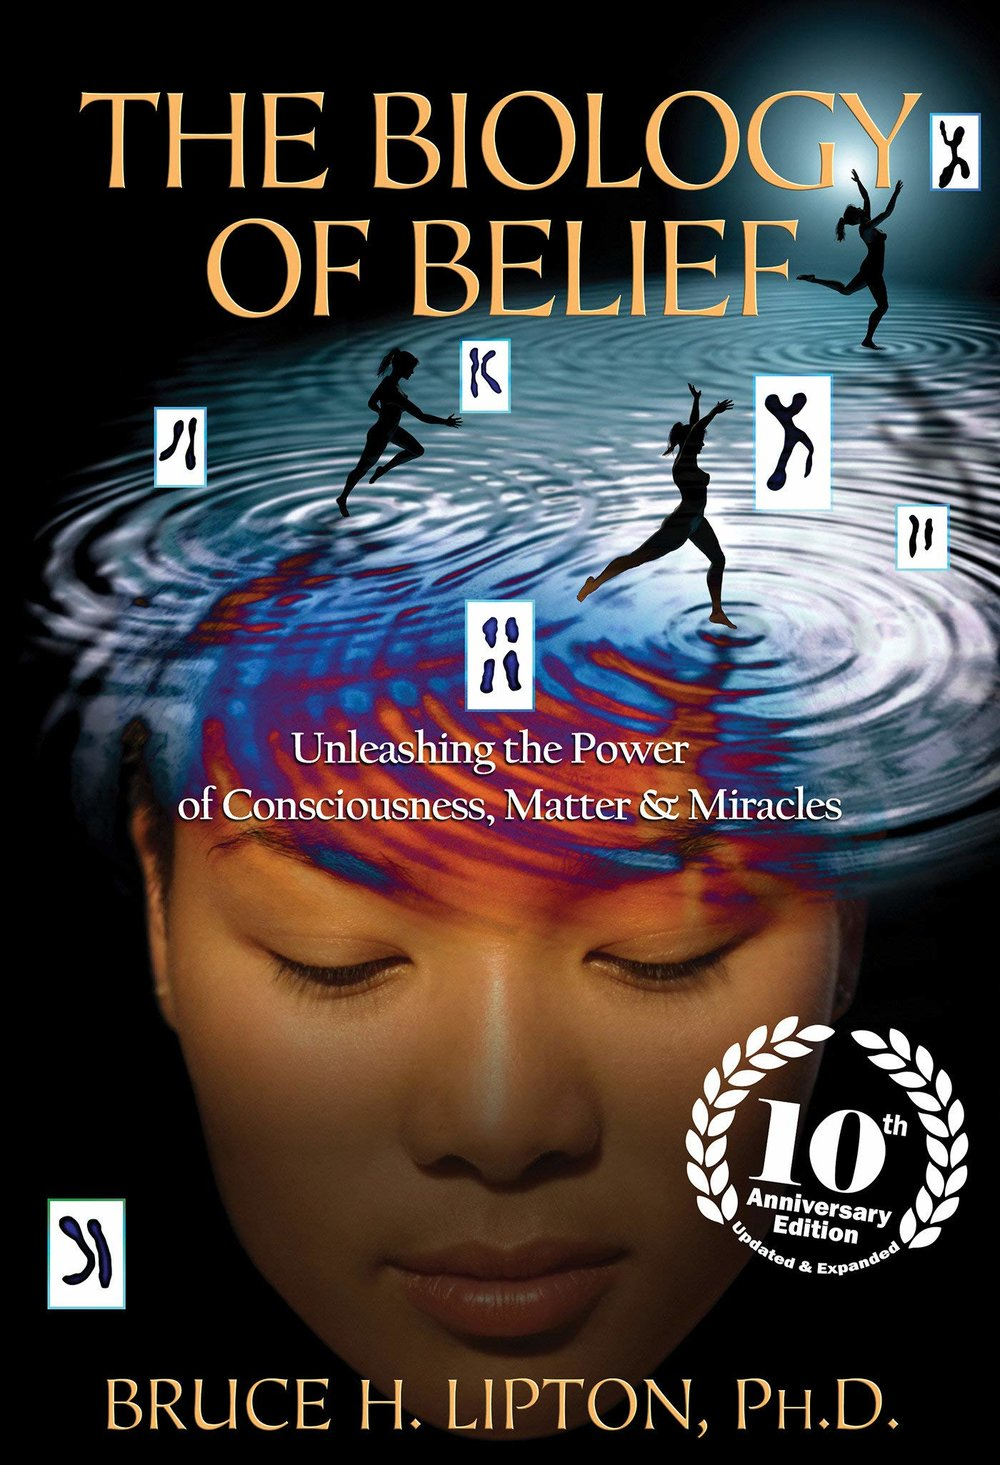 The Biology of Belief: Unleasing the Power of Conciousness